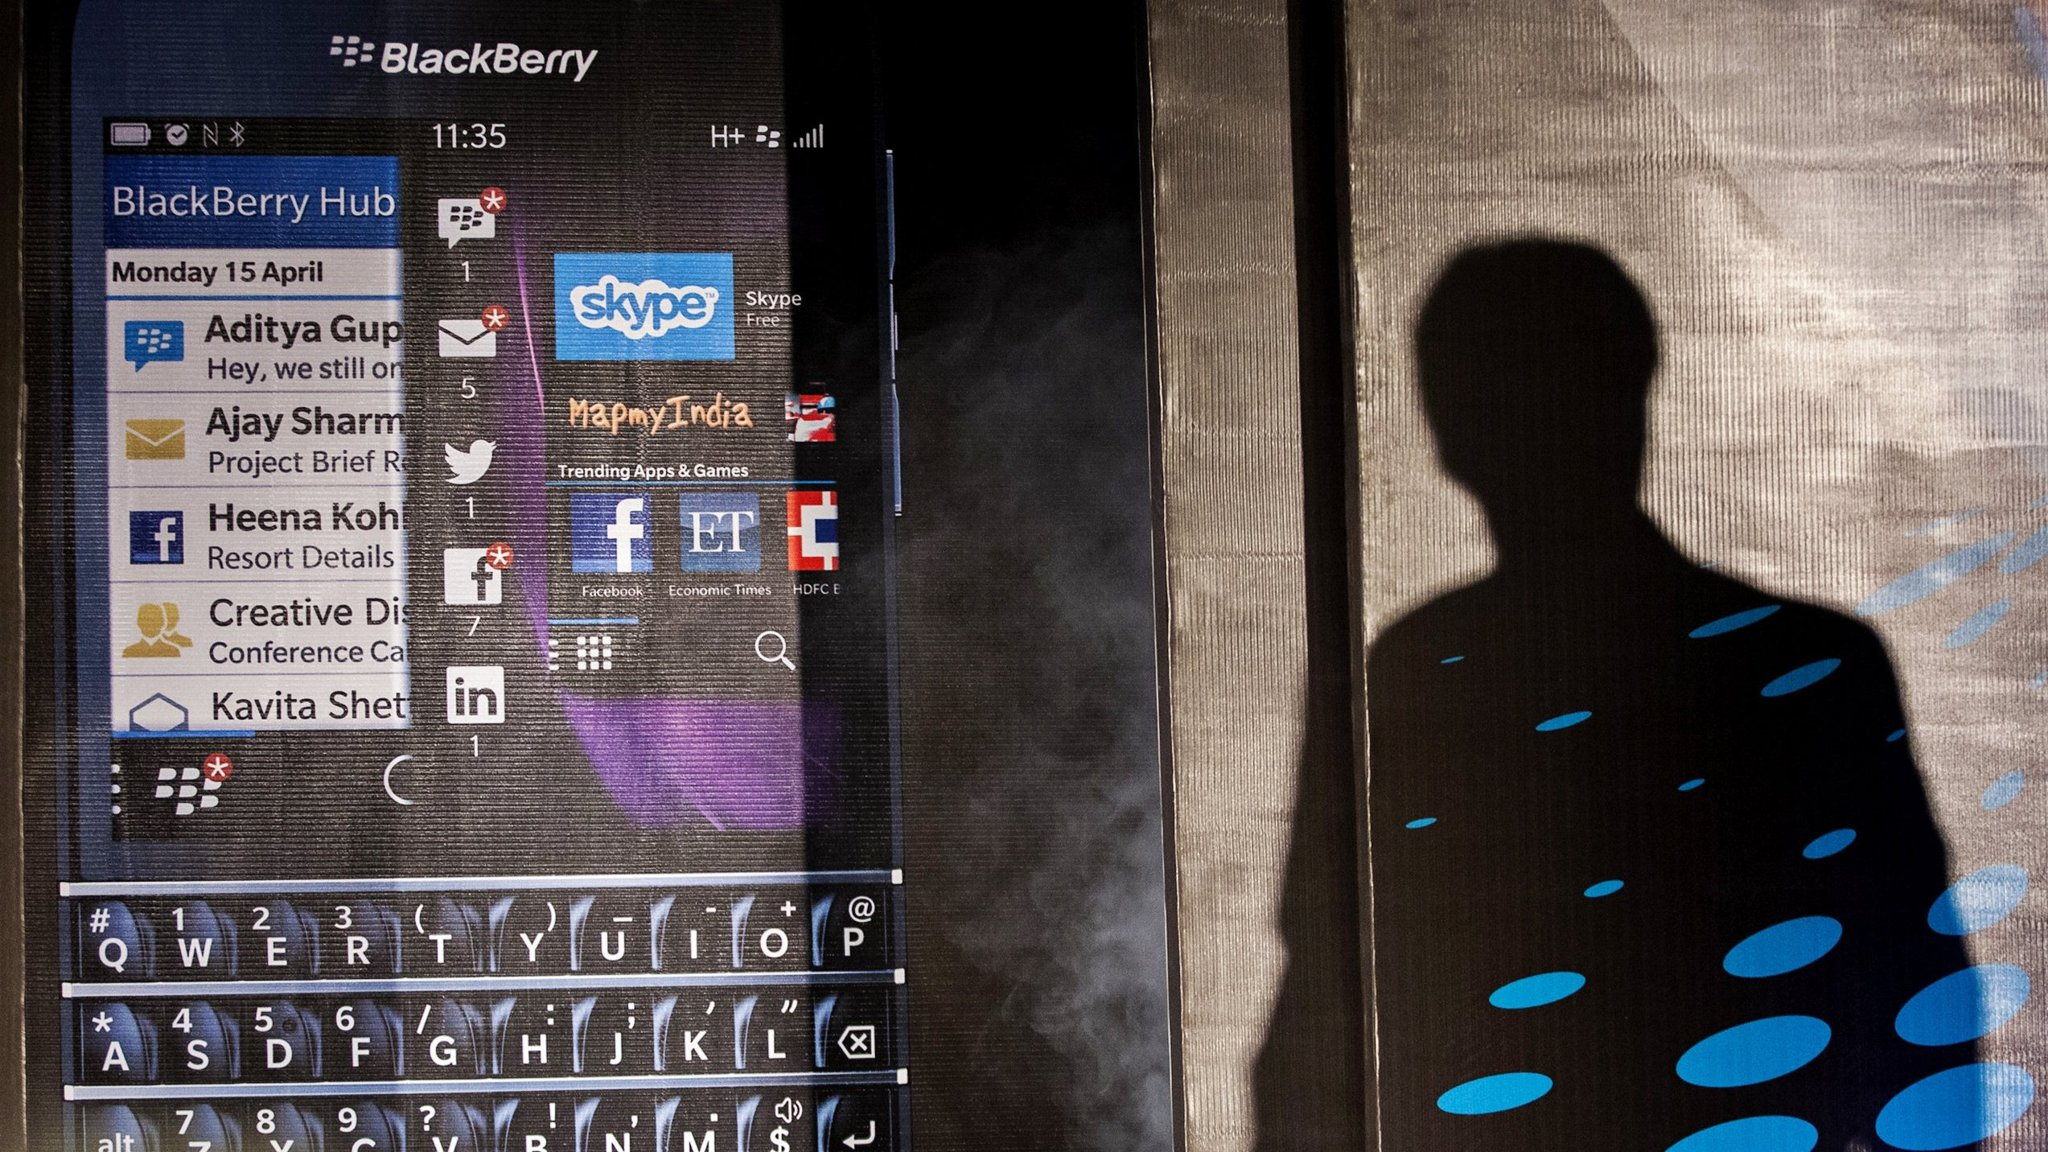 BlackBerry phones face thumbs down | Financial Times